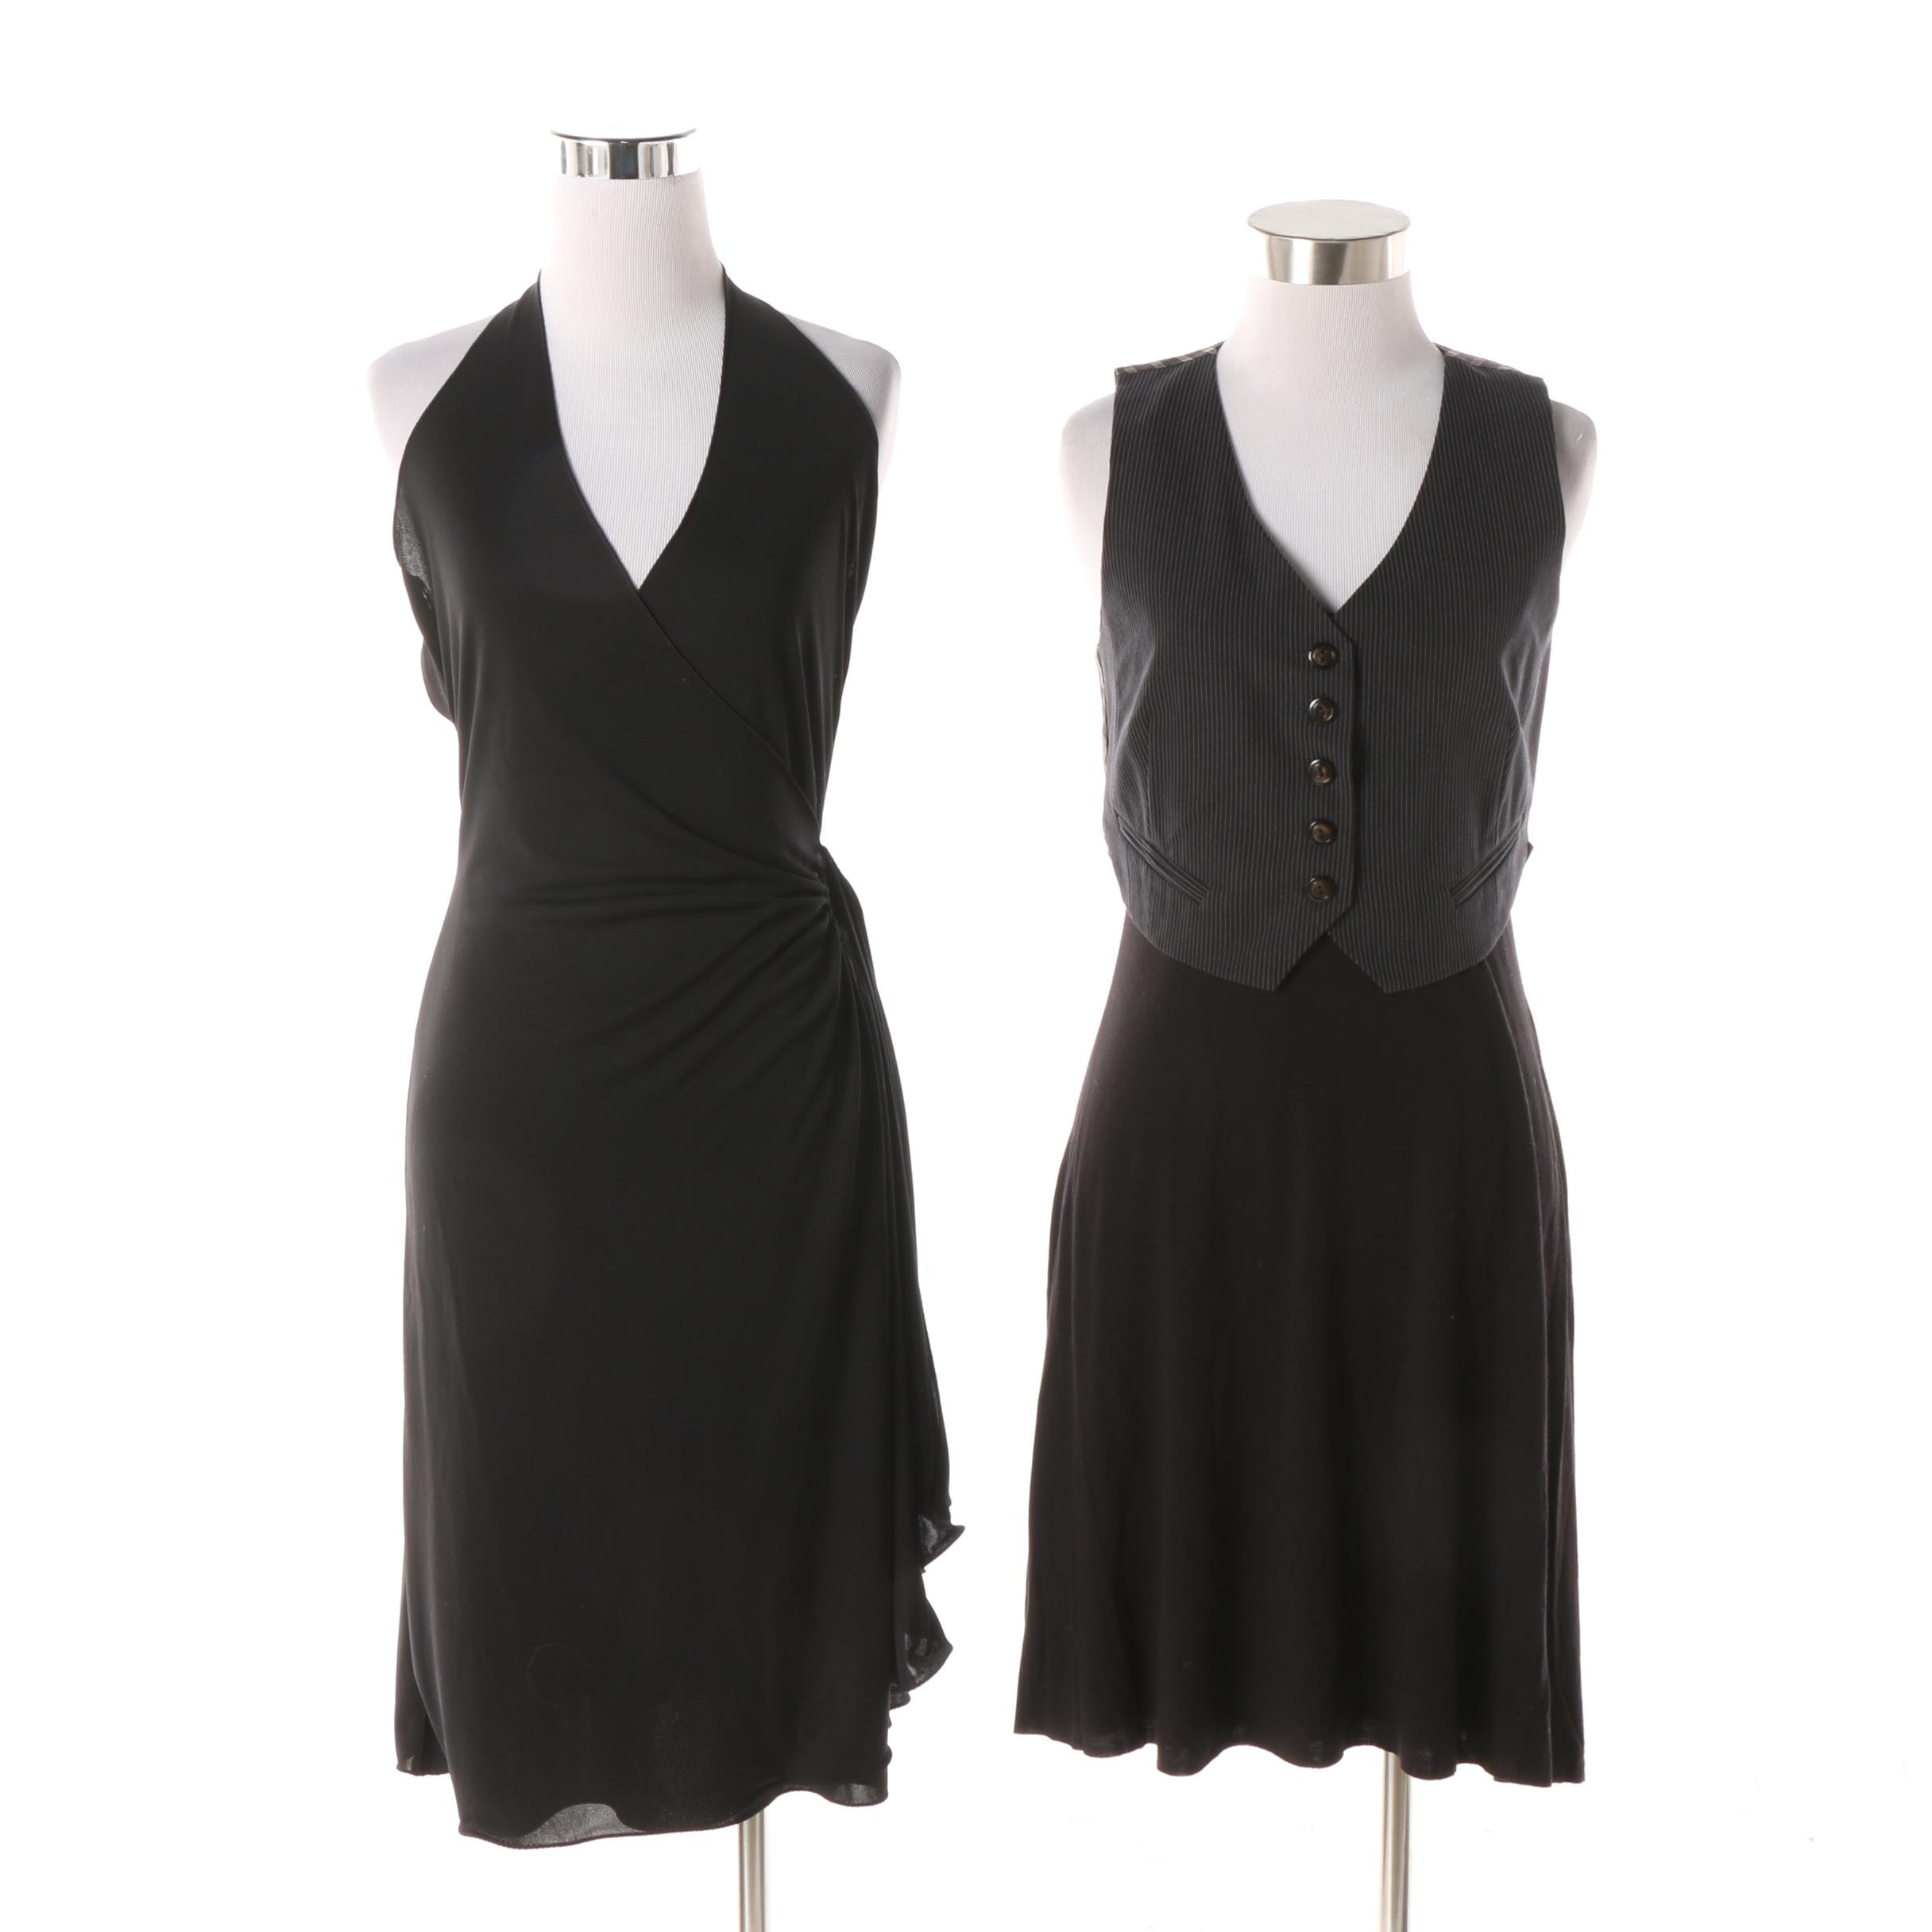 Emporio Armani Black Halter Dress and Bailey 44 Sleeveless Casual Dress